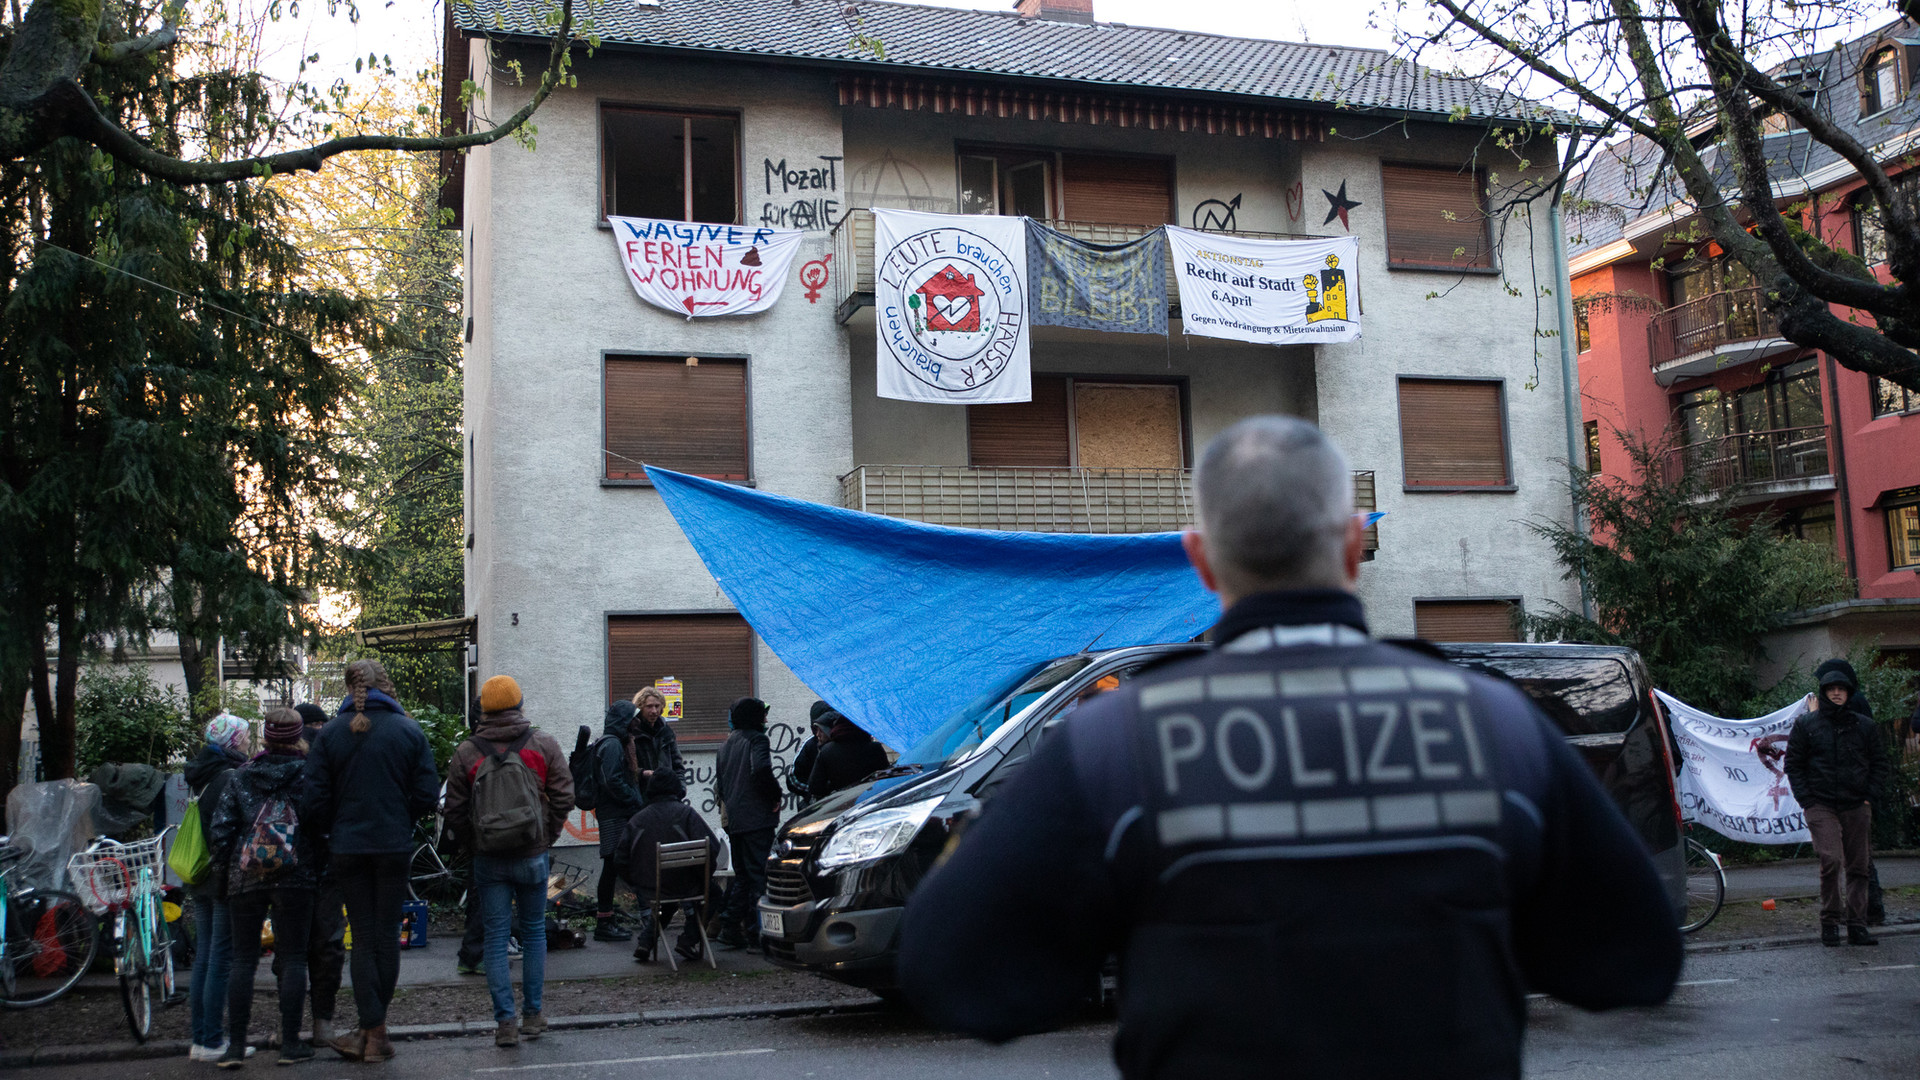 Police arrive at a house squat